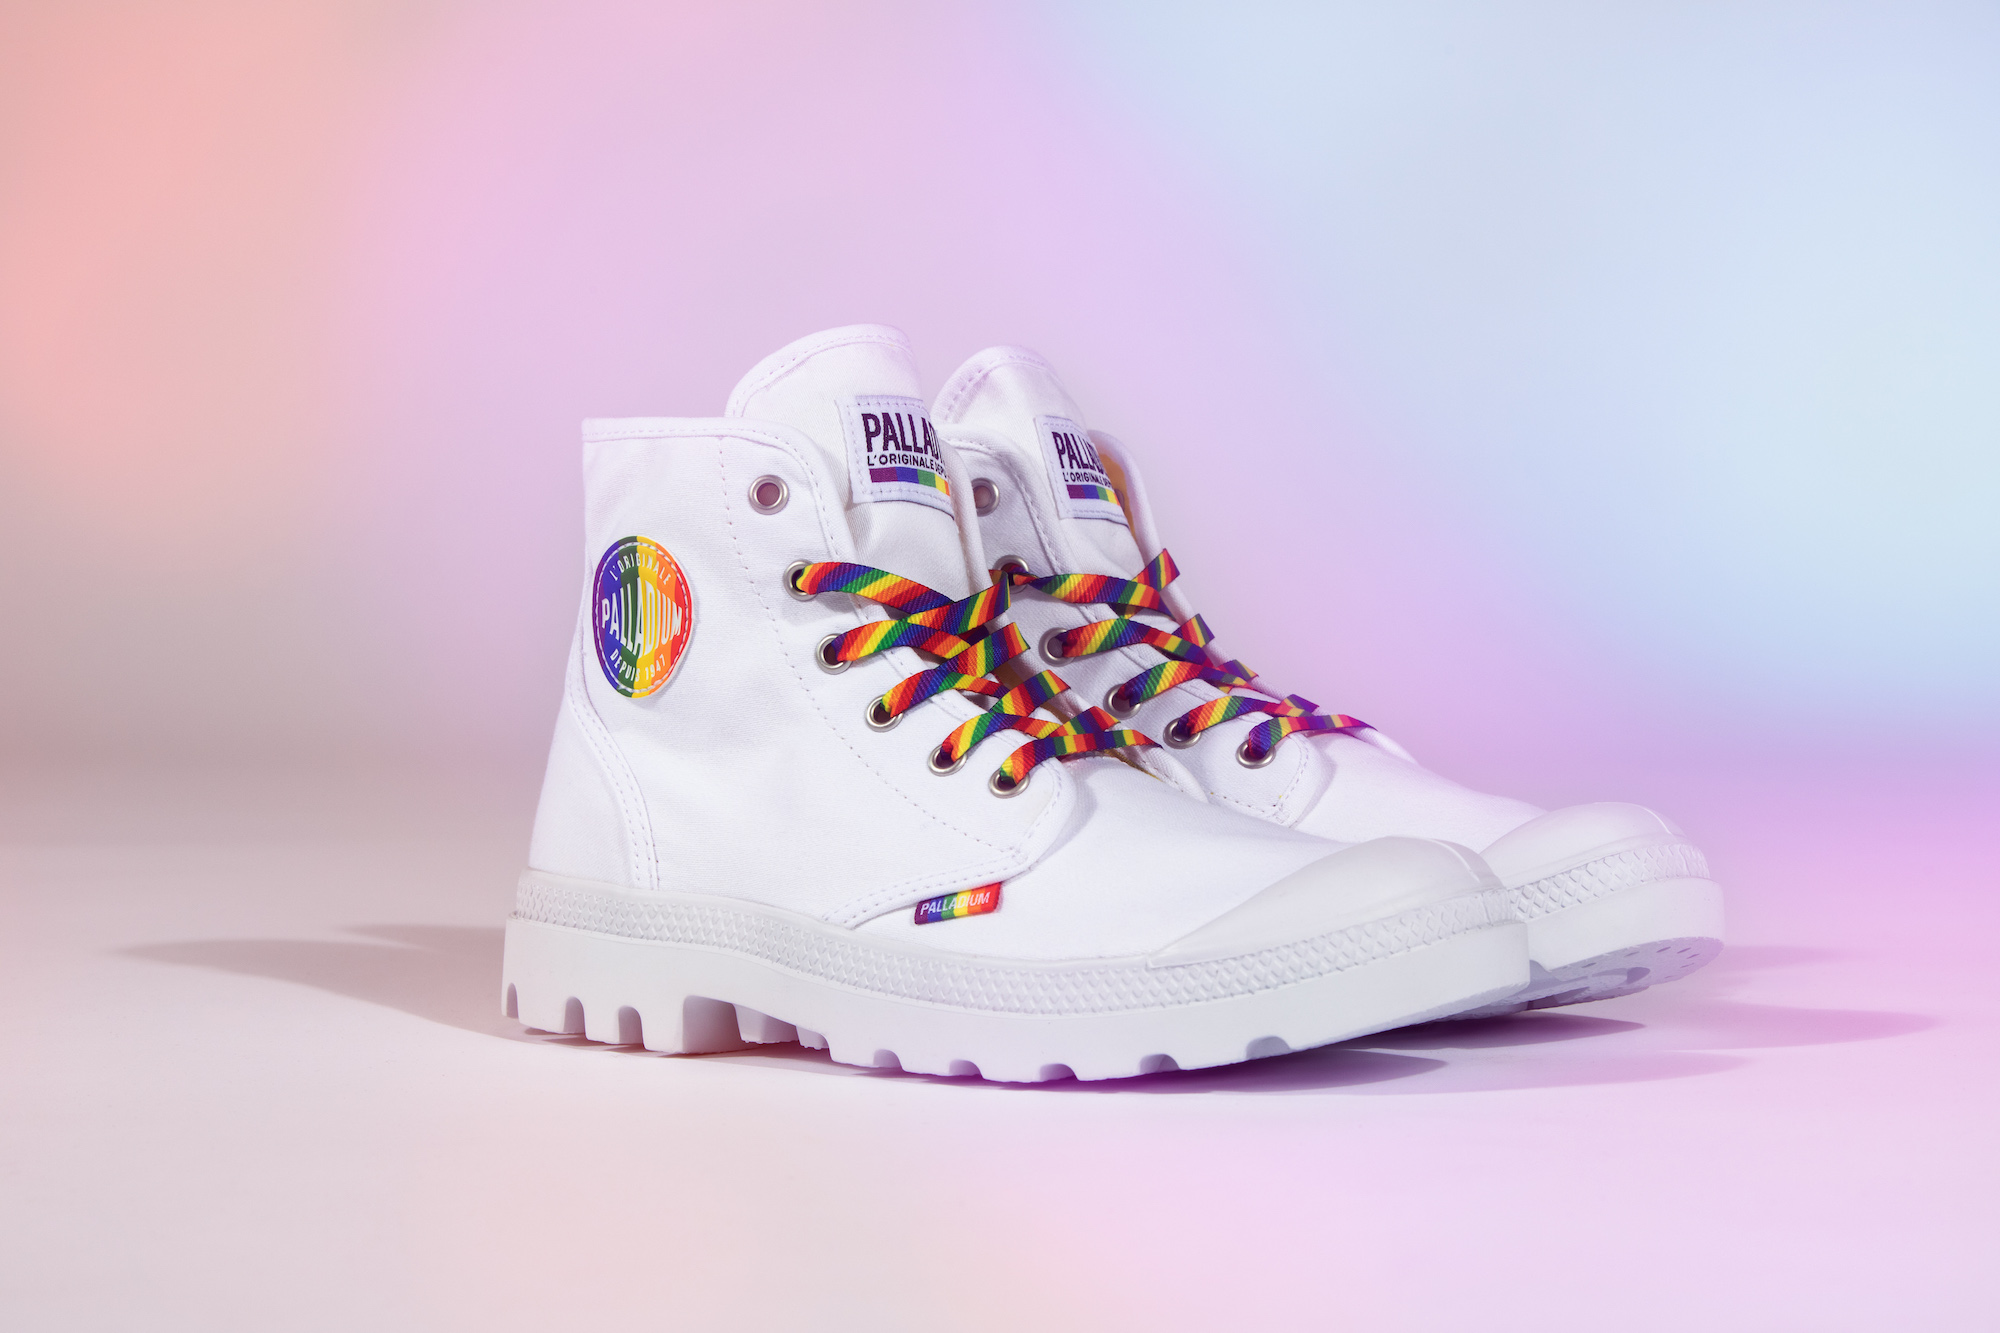 Palladium Pride collection white boot